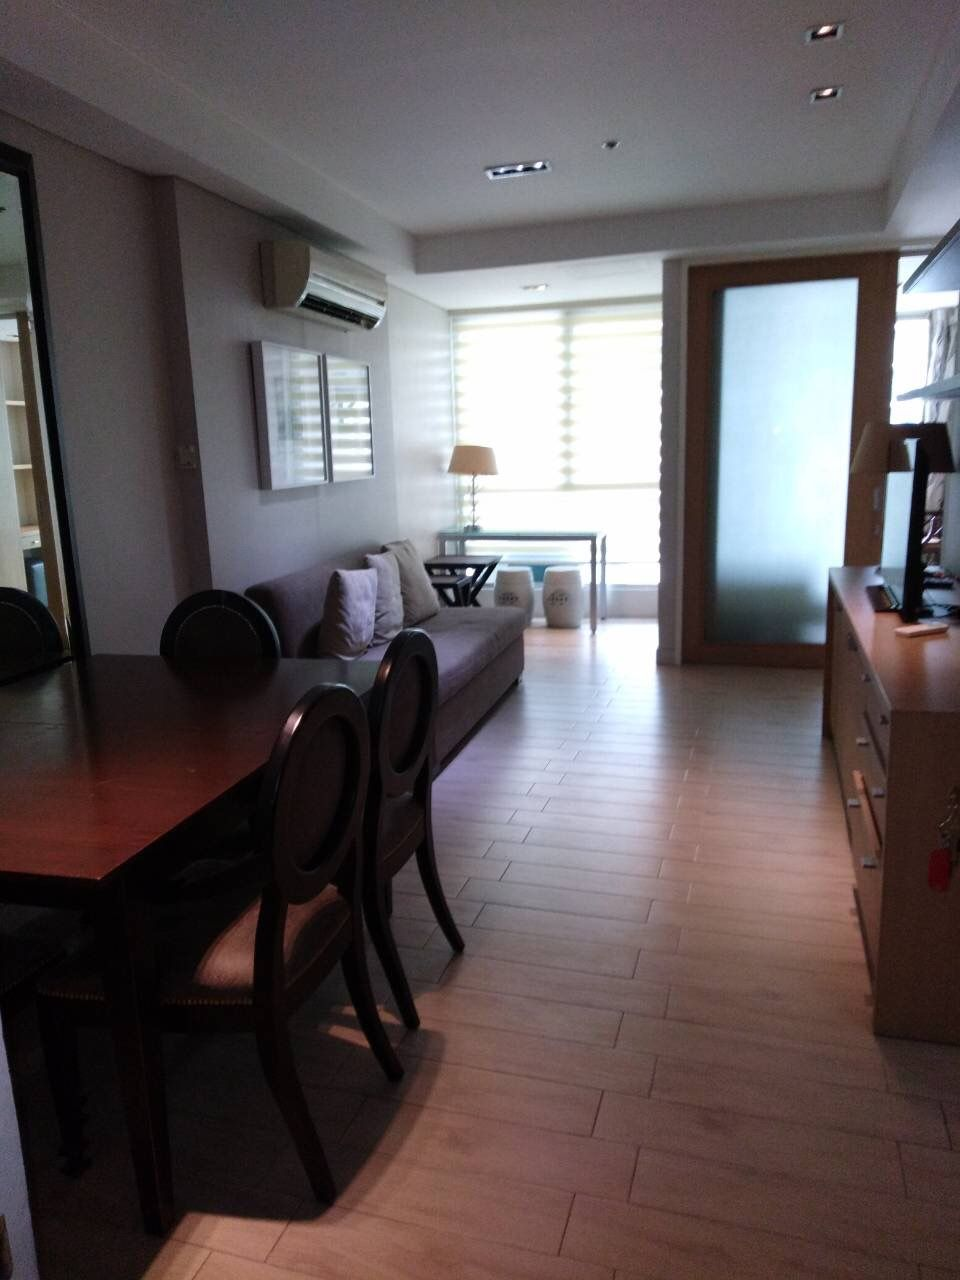 2 Bedroom Condo for Rent in BGC Taguig City, 75sqm